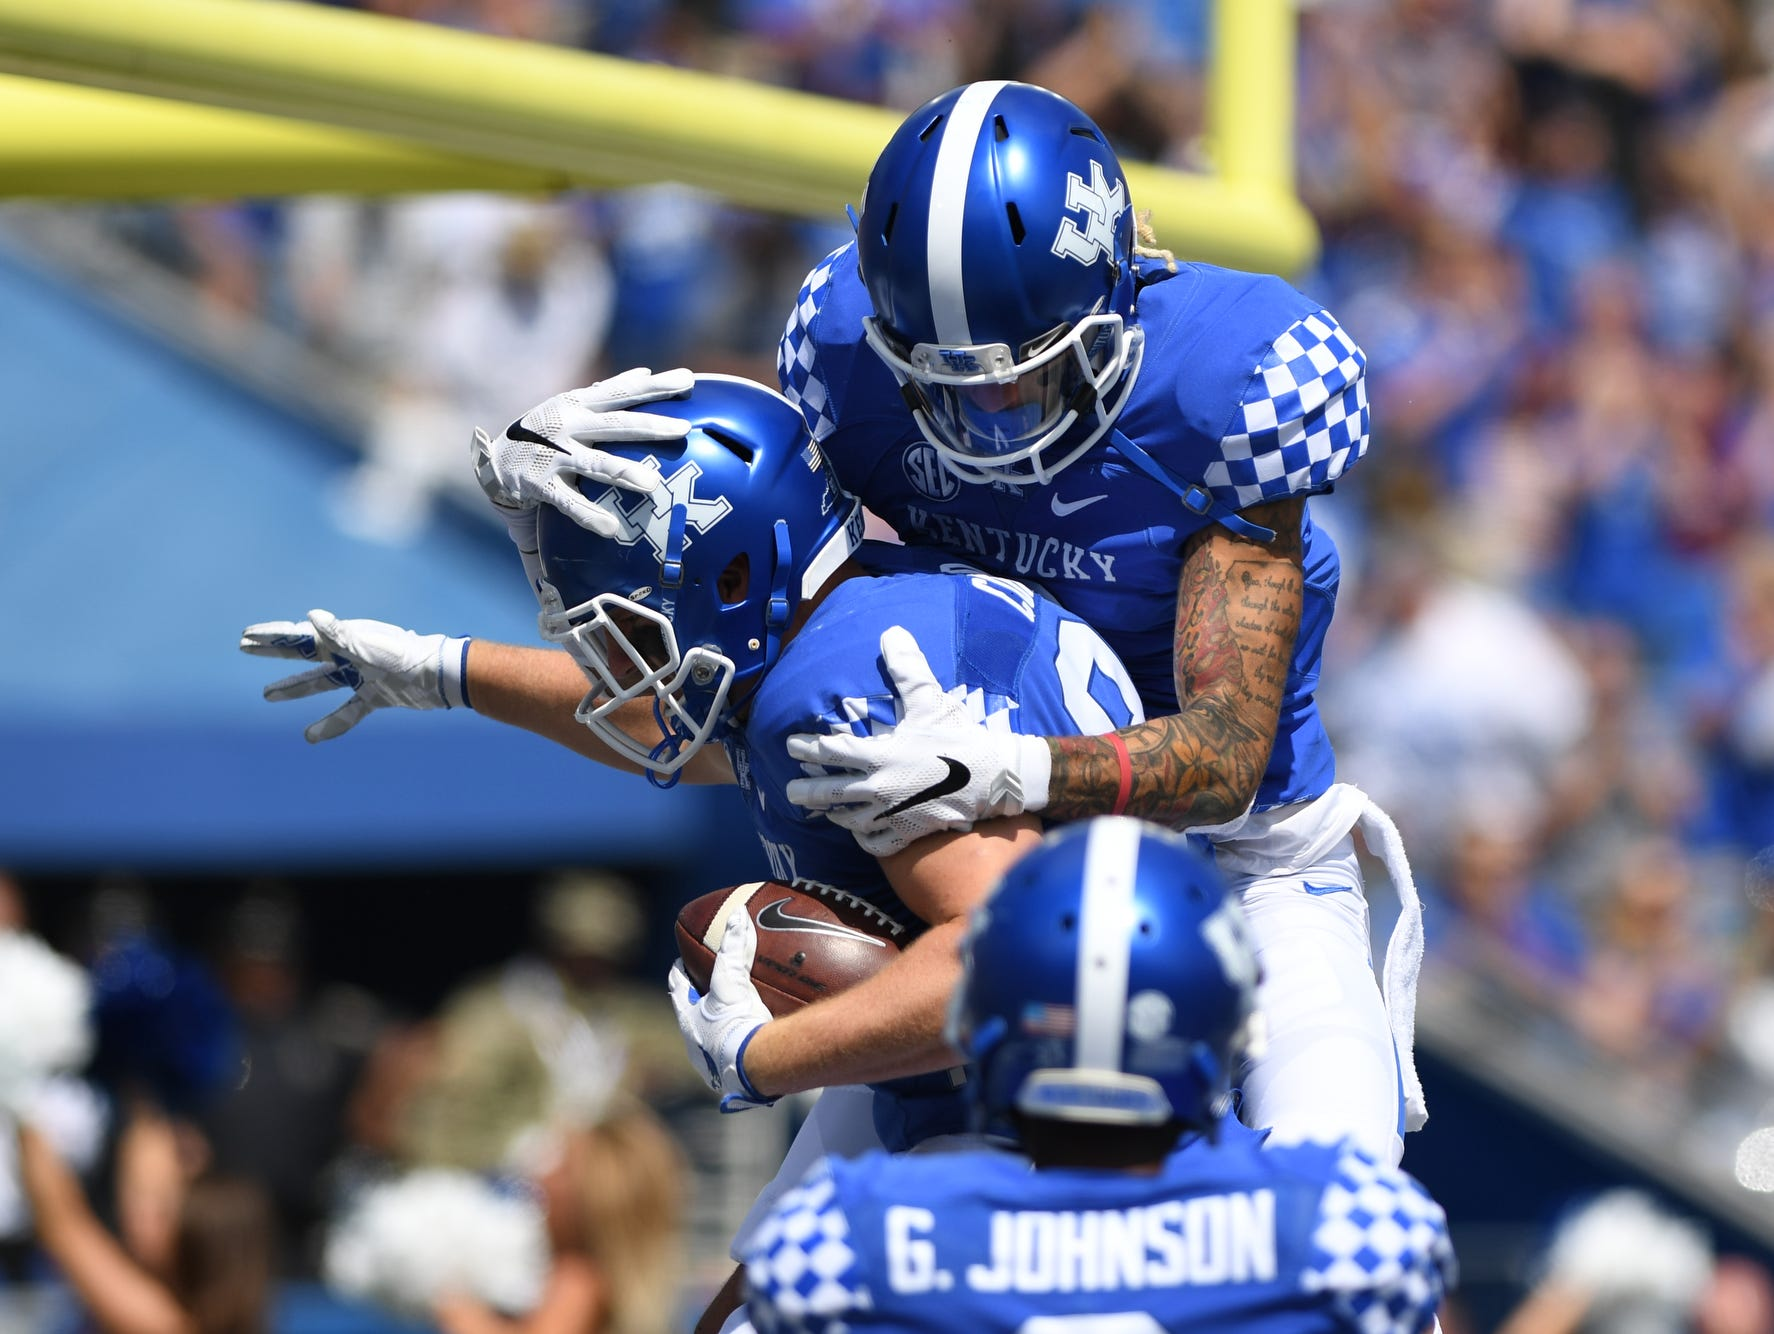 UK TE C.J. Conrad celebrates a touchdown during the University of Kentucky football game against Eastern Kentucky University in Lexington, KY on Saturday, September 9, 2017.